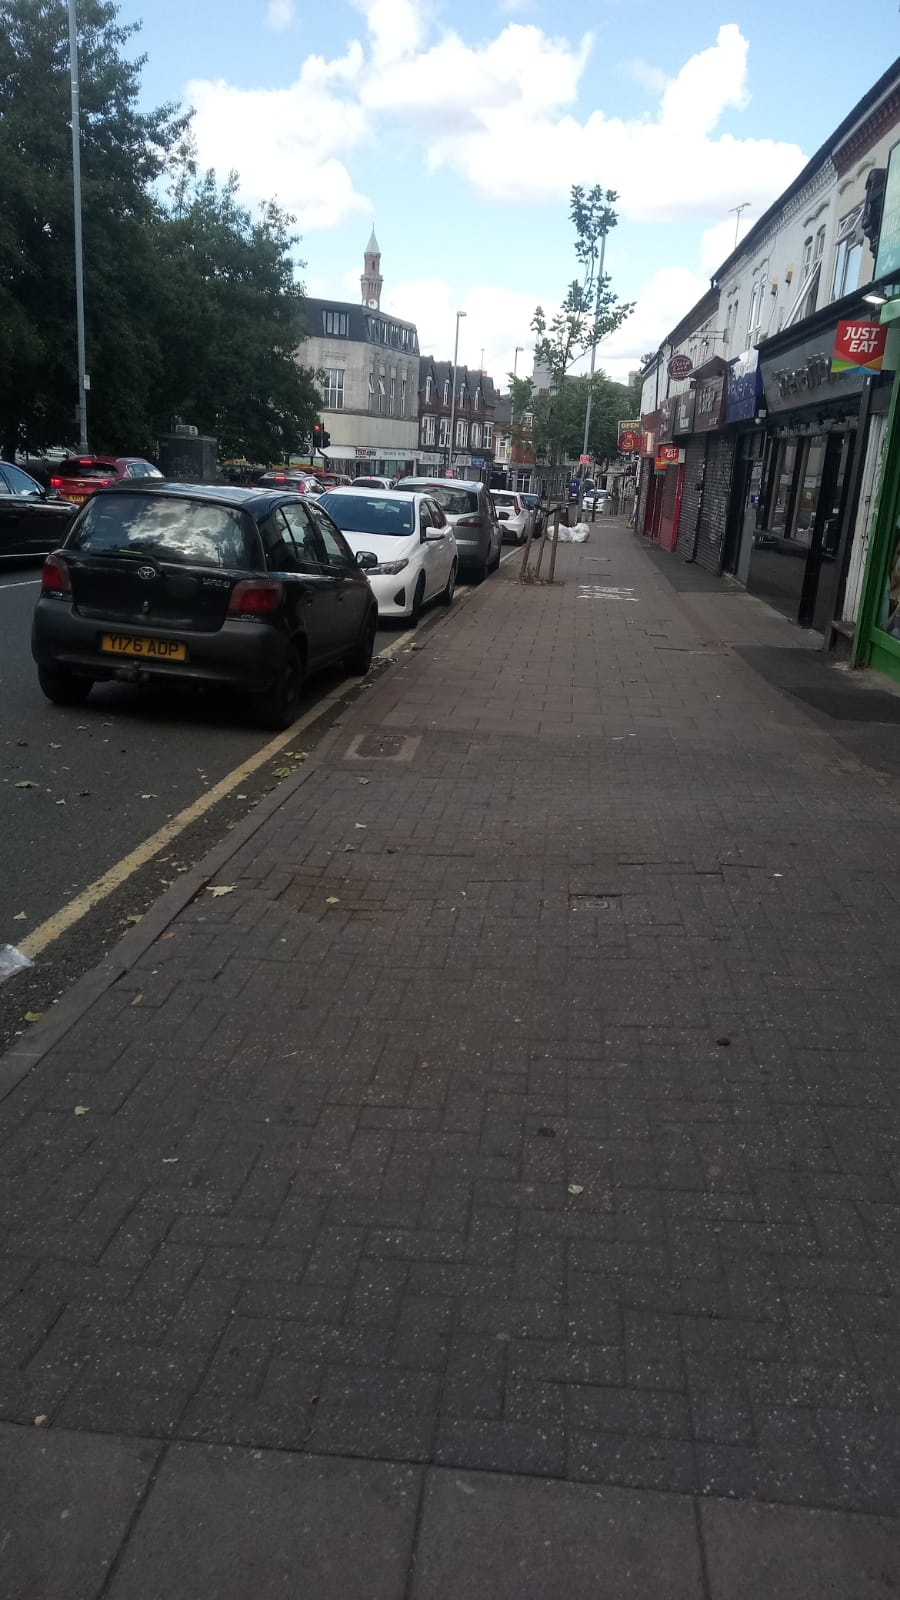 Selly Oak high street 1